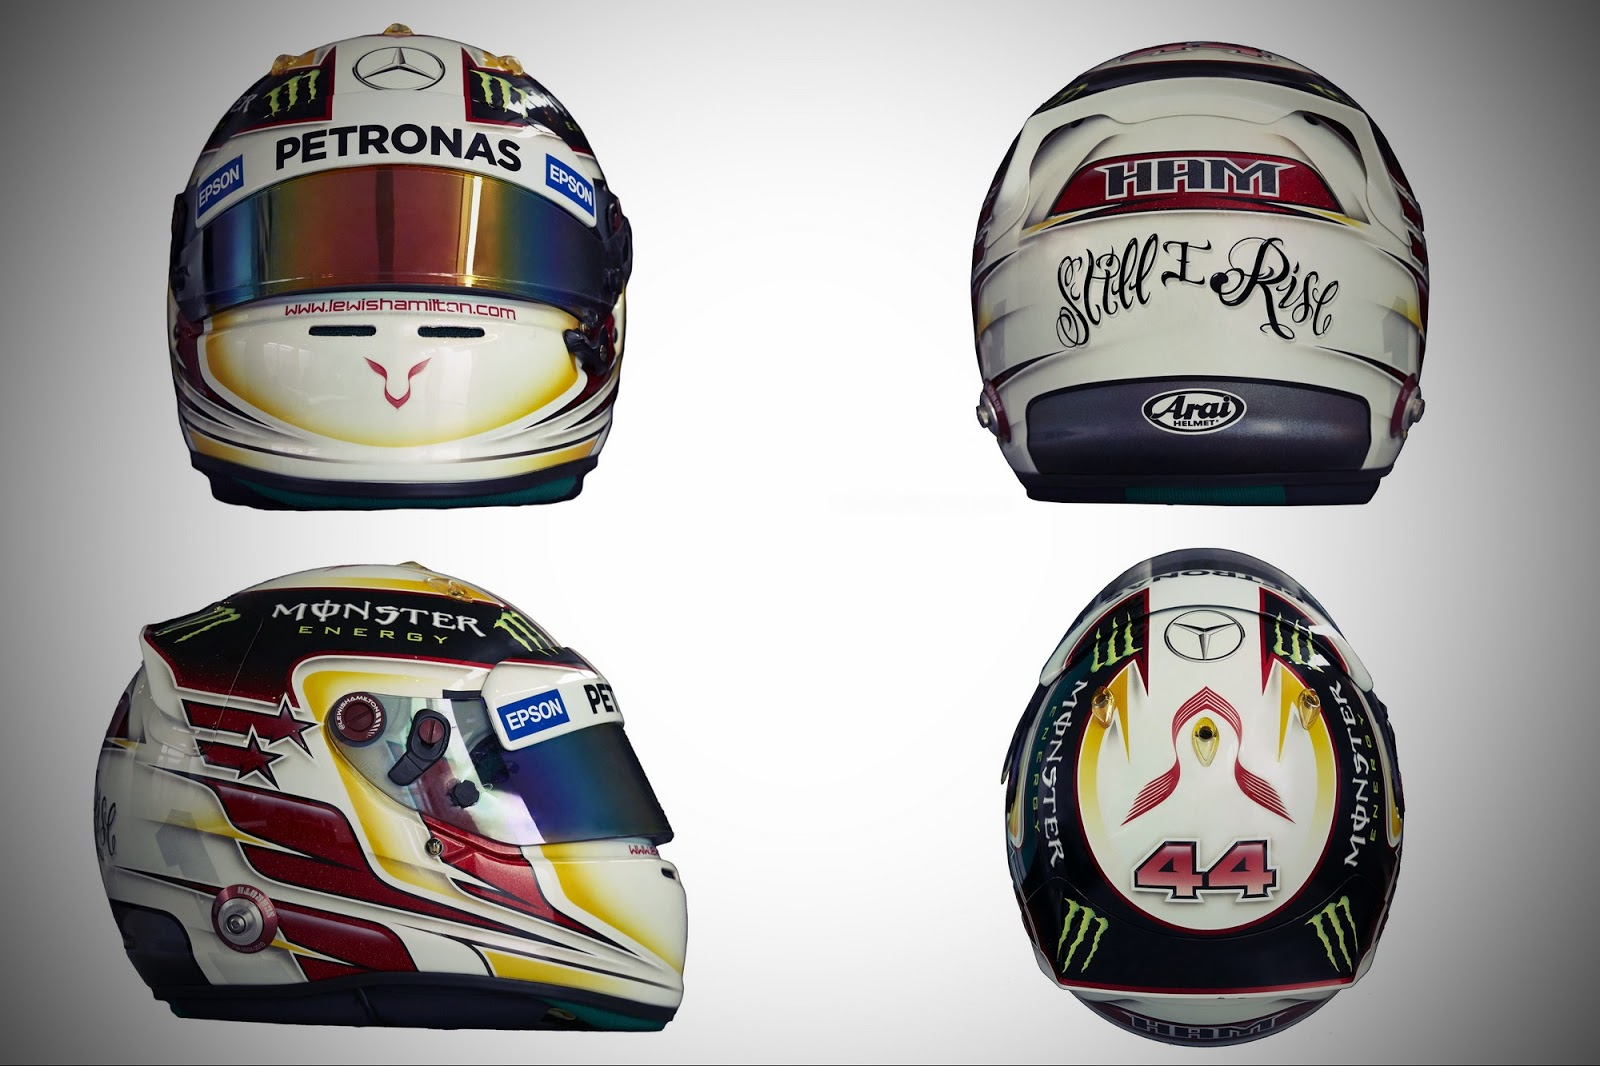 2015 Formula One Helmets used by drivers